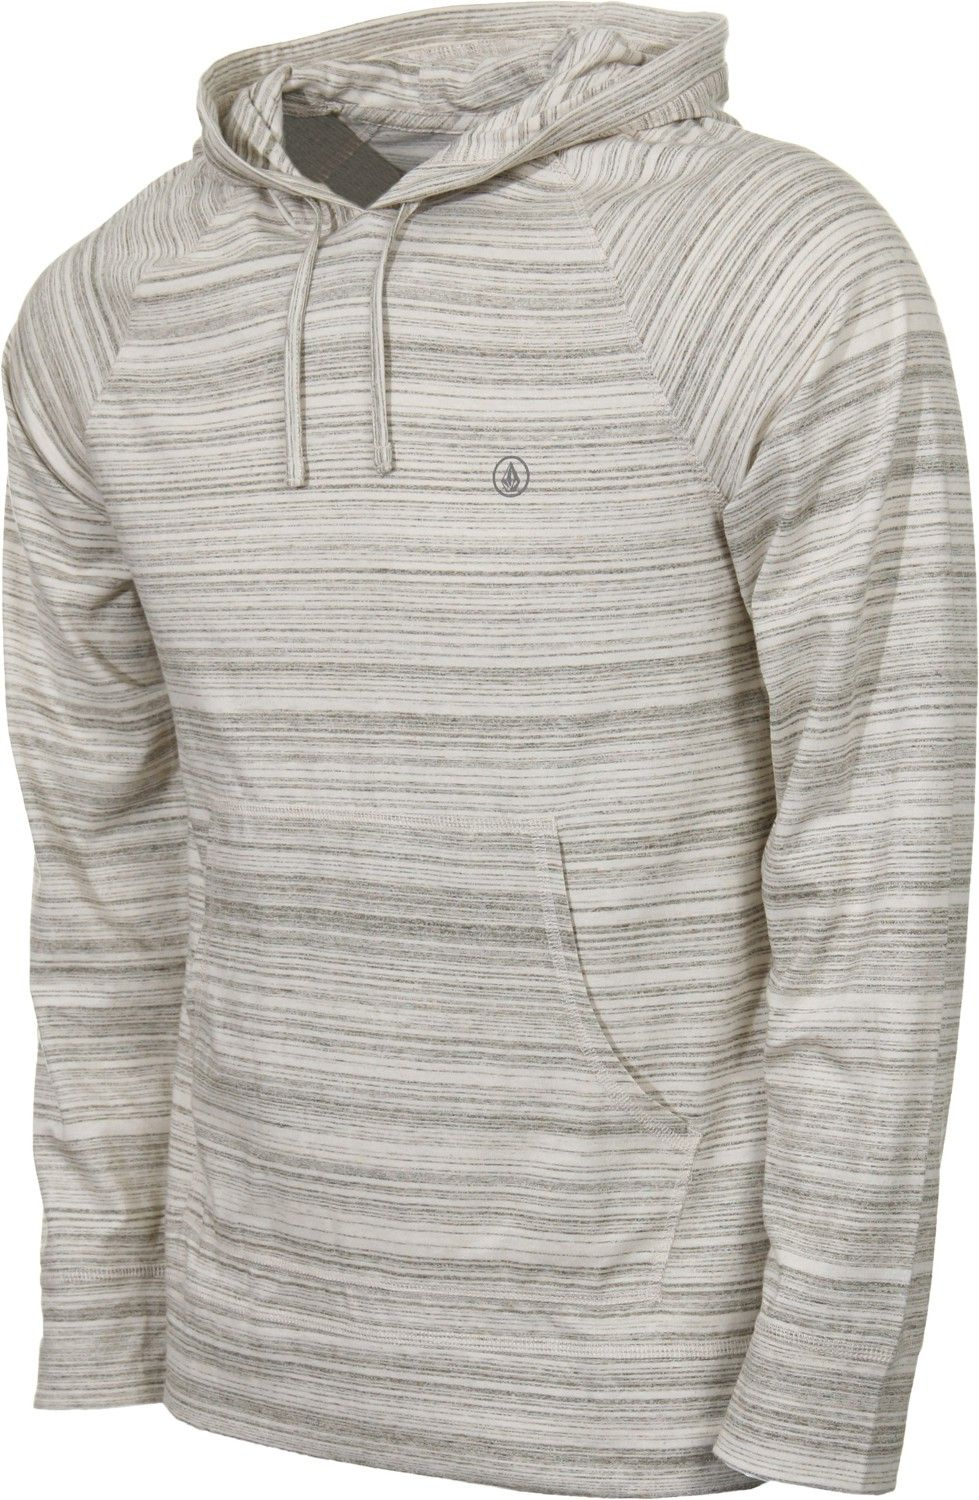 Volcom Blockade Haze Hoodie - vanilla - Men's Clothing > Hoodies & Sweaters  > Hoodies > Pullover Hoodies